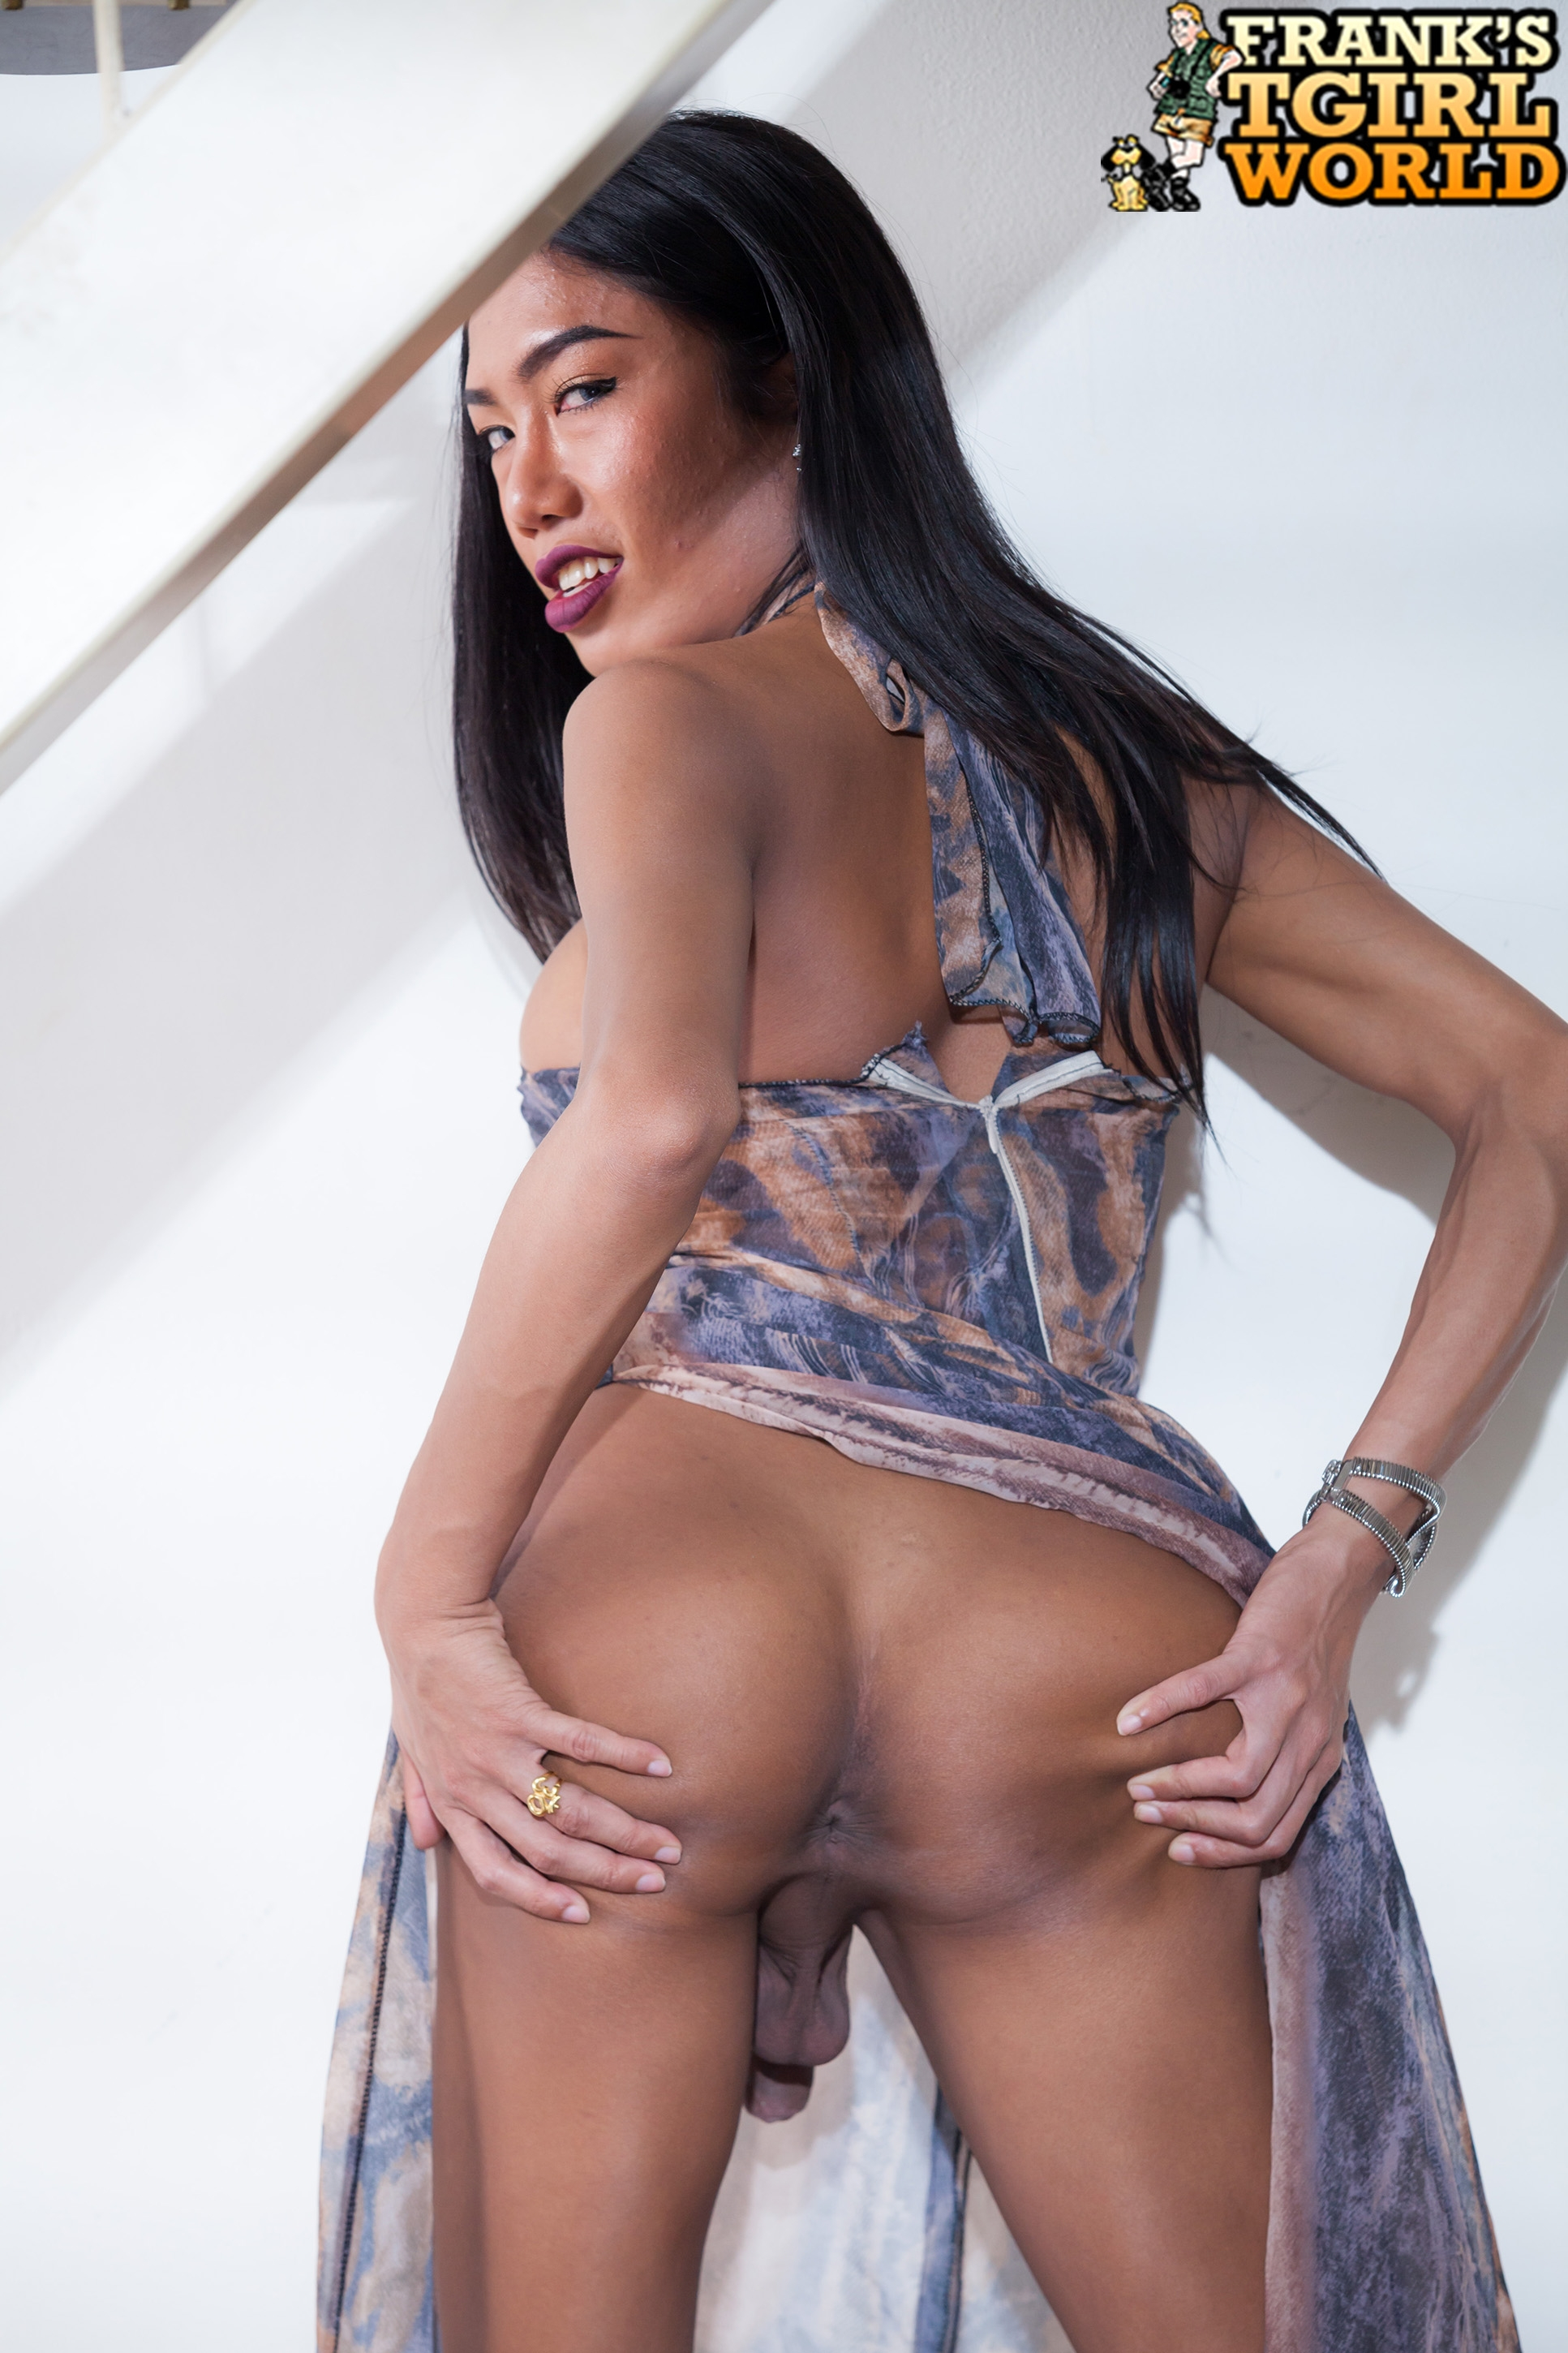 She adores rock hard cocks stuck deep in her vagina 6